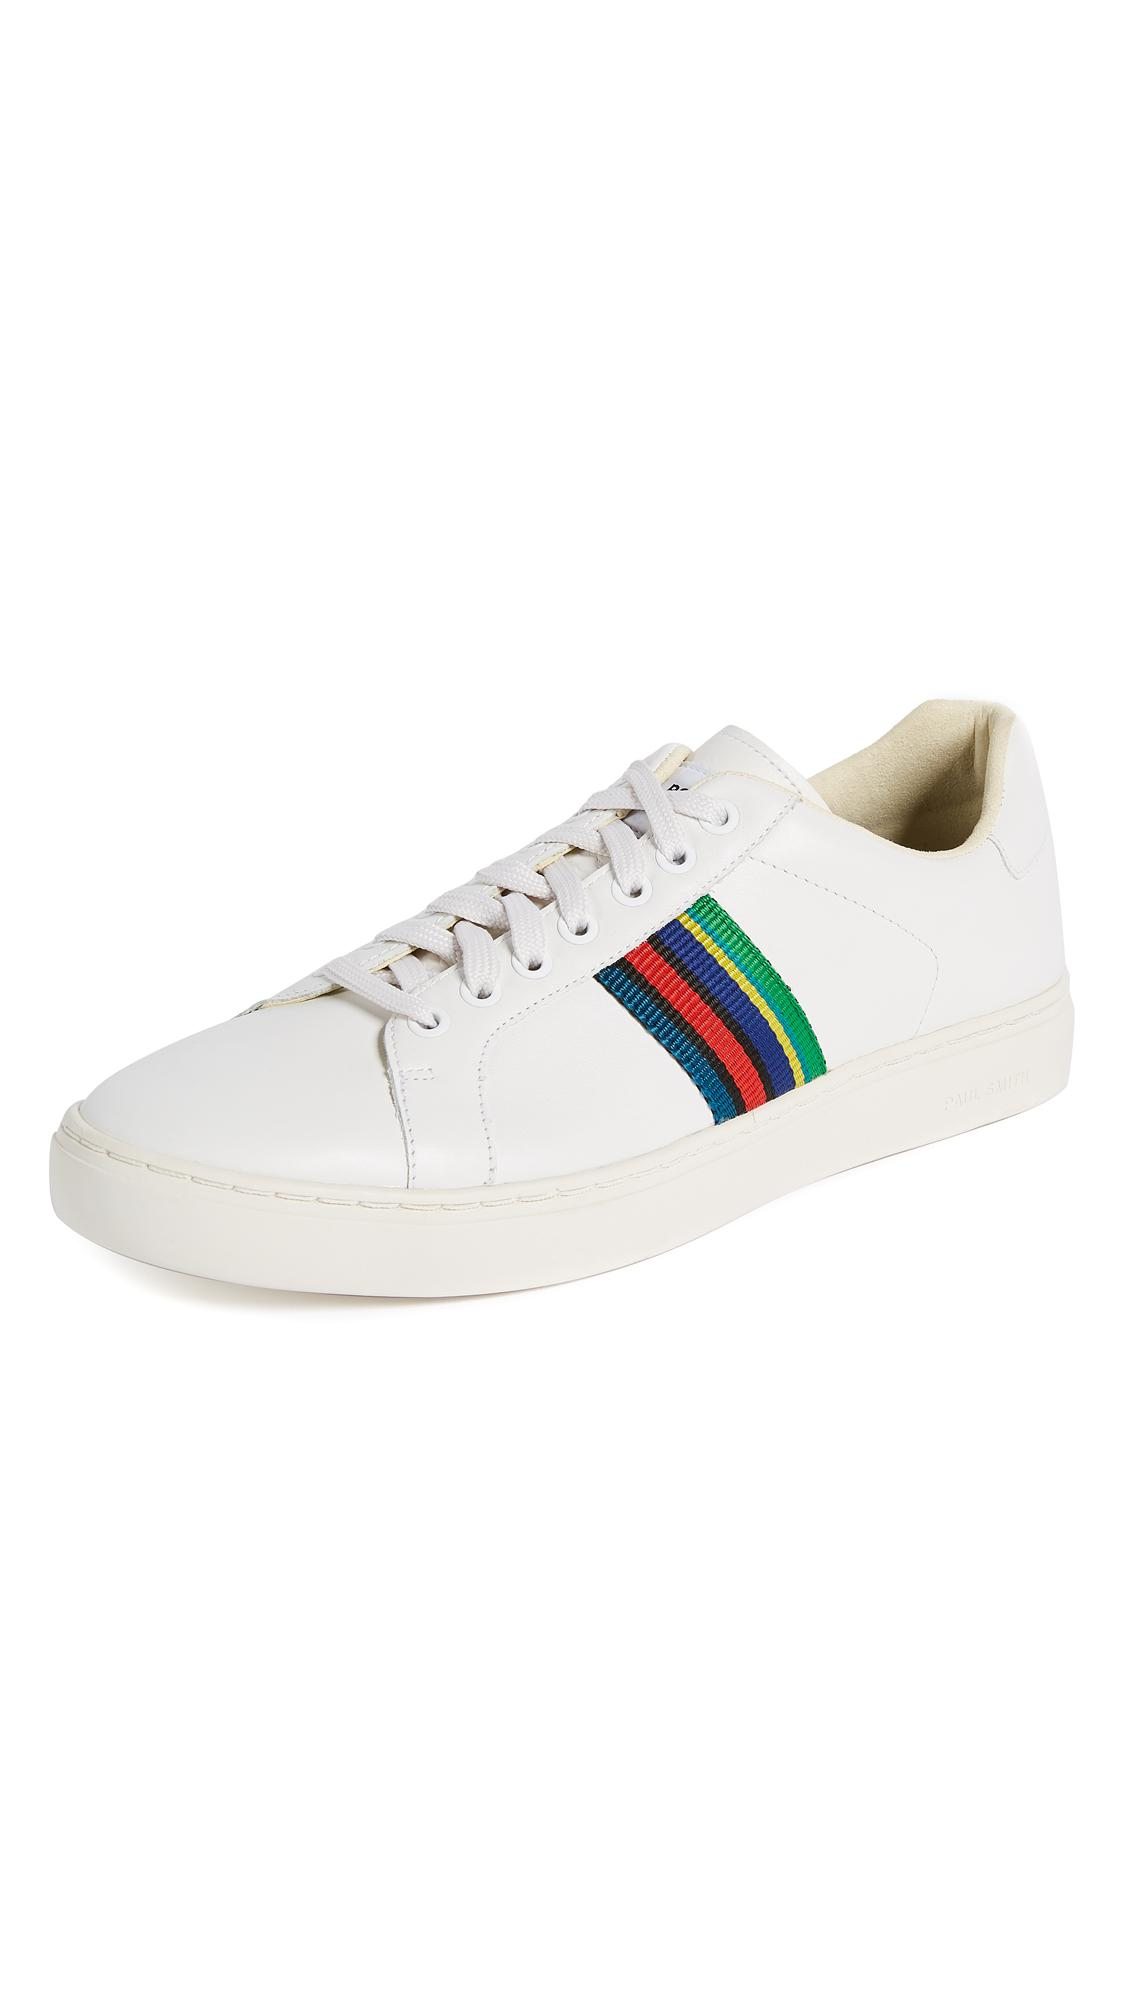 PS by Paul Smith Black Lapin Sneakers tcgu8